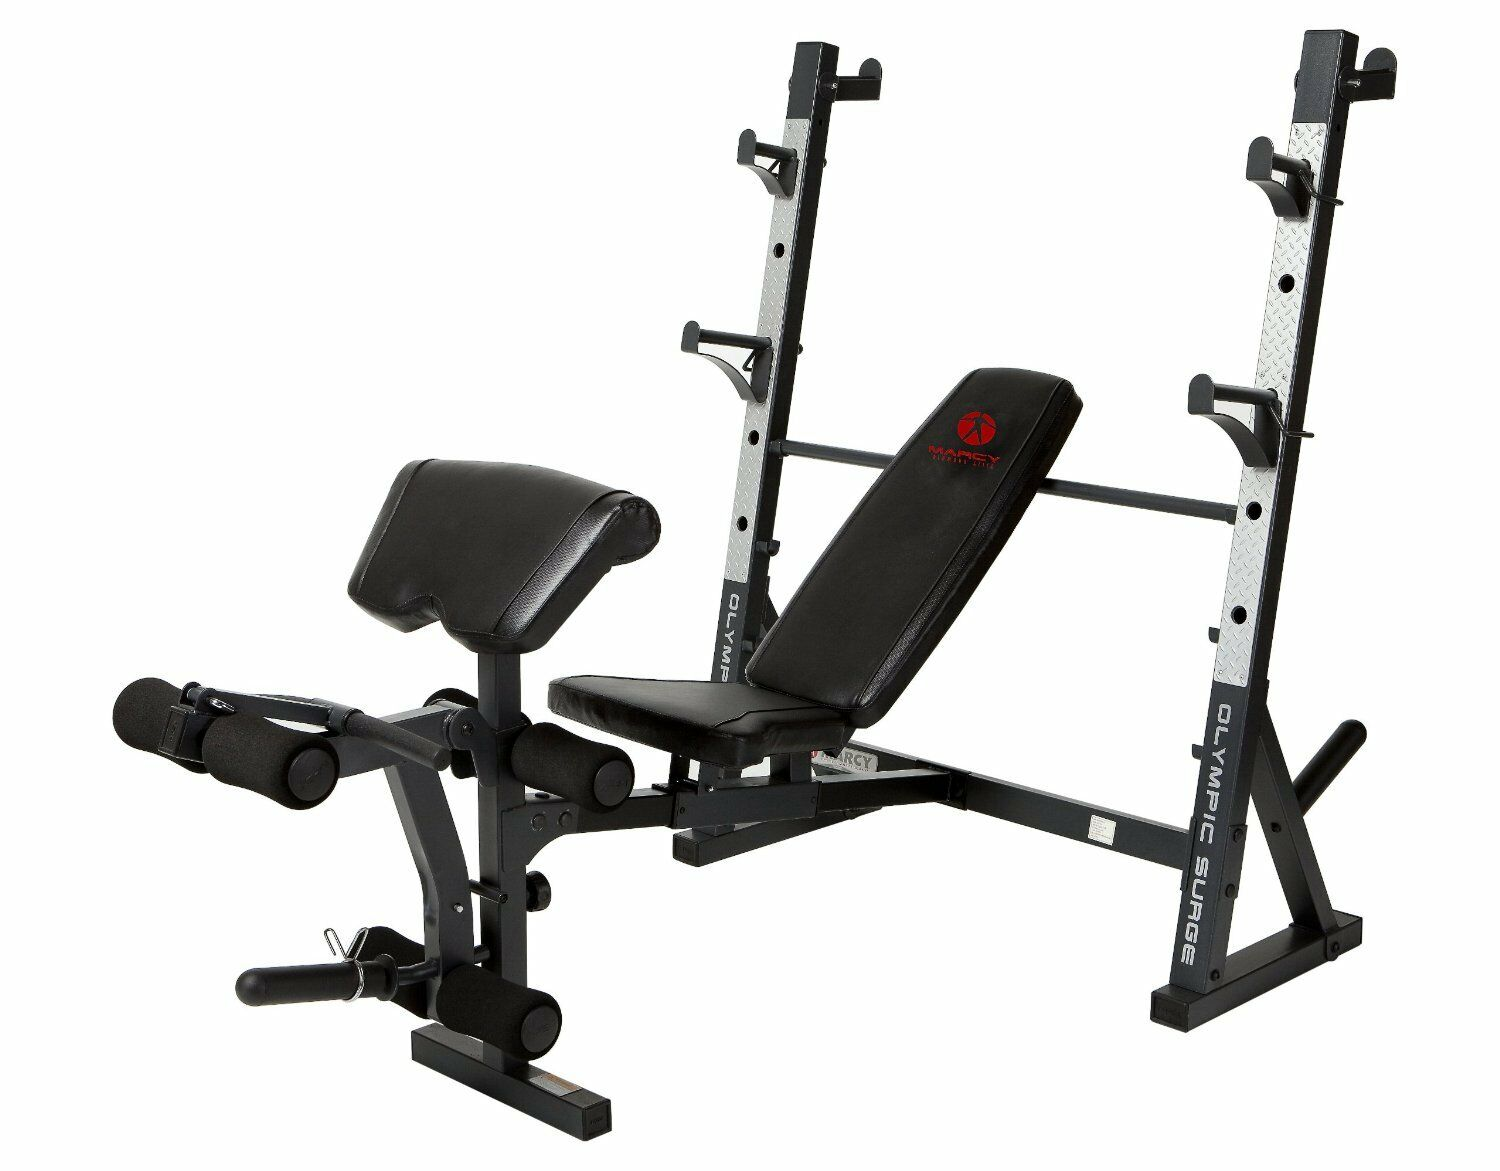 New Complete Olympic Größe Workout Bench Home Gym Fitness weißht Lifting Press 2